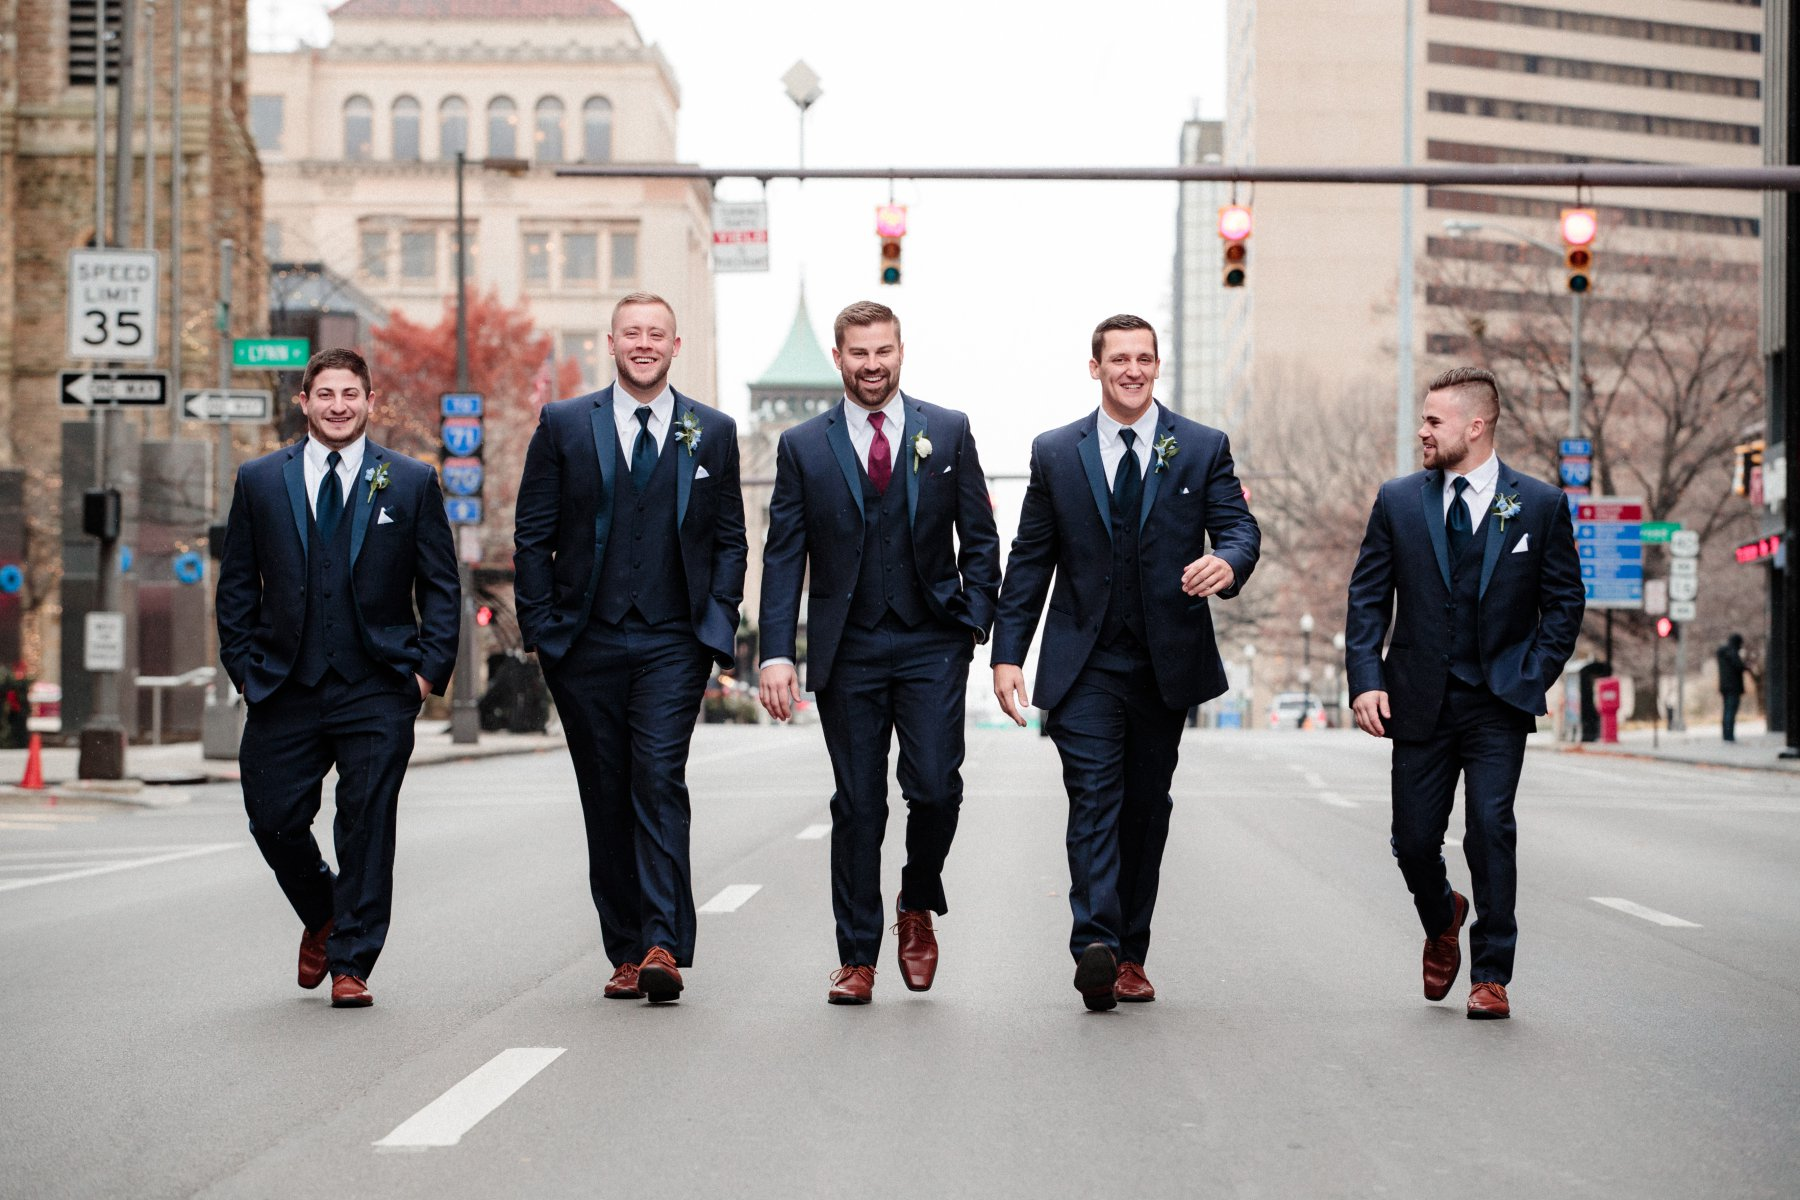 Awesome groomsmen photos - Columbus wedding photographer